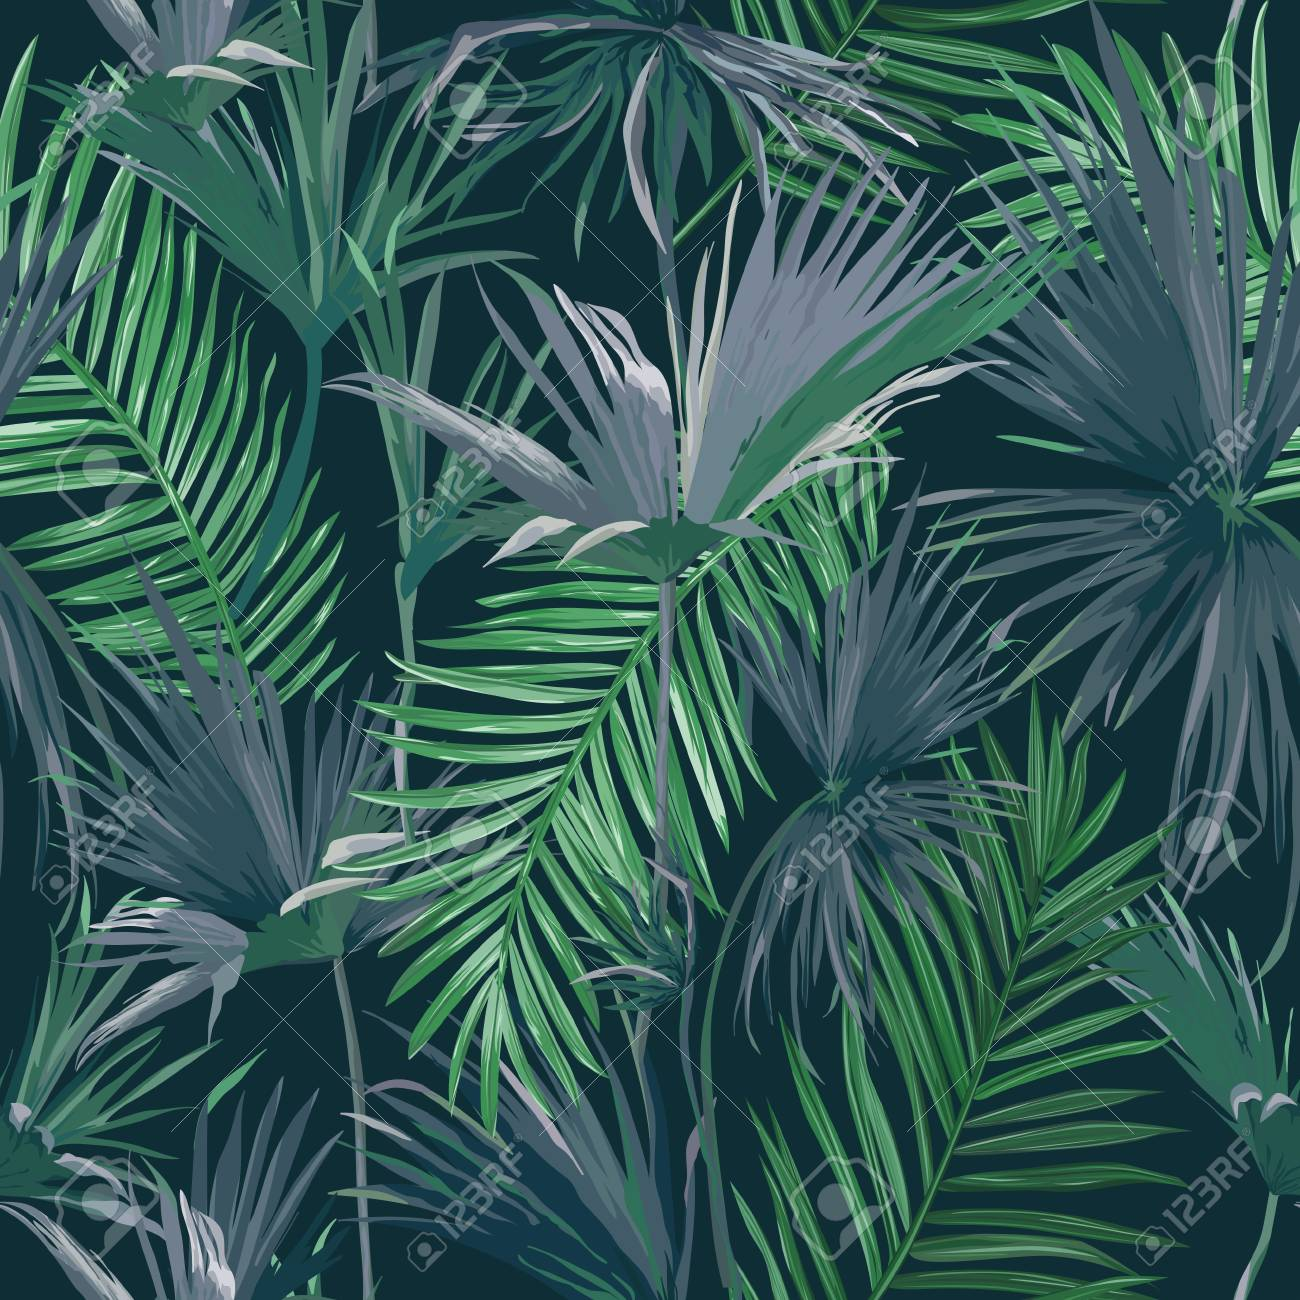 Tropical Jungle Palm Leaves Seamless Background, Vector Floral Pattern Illustration for Wallpaper, Print Design, Textile Template - 129344992